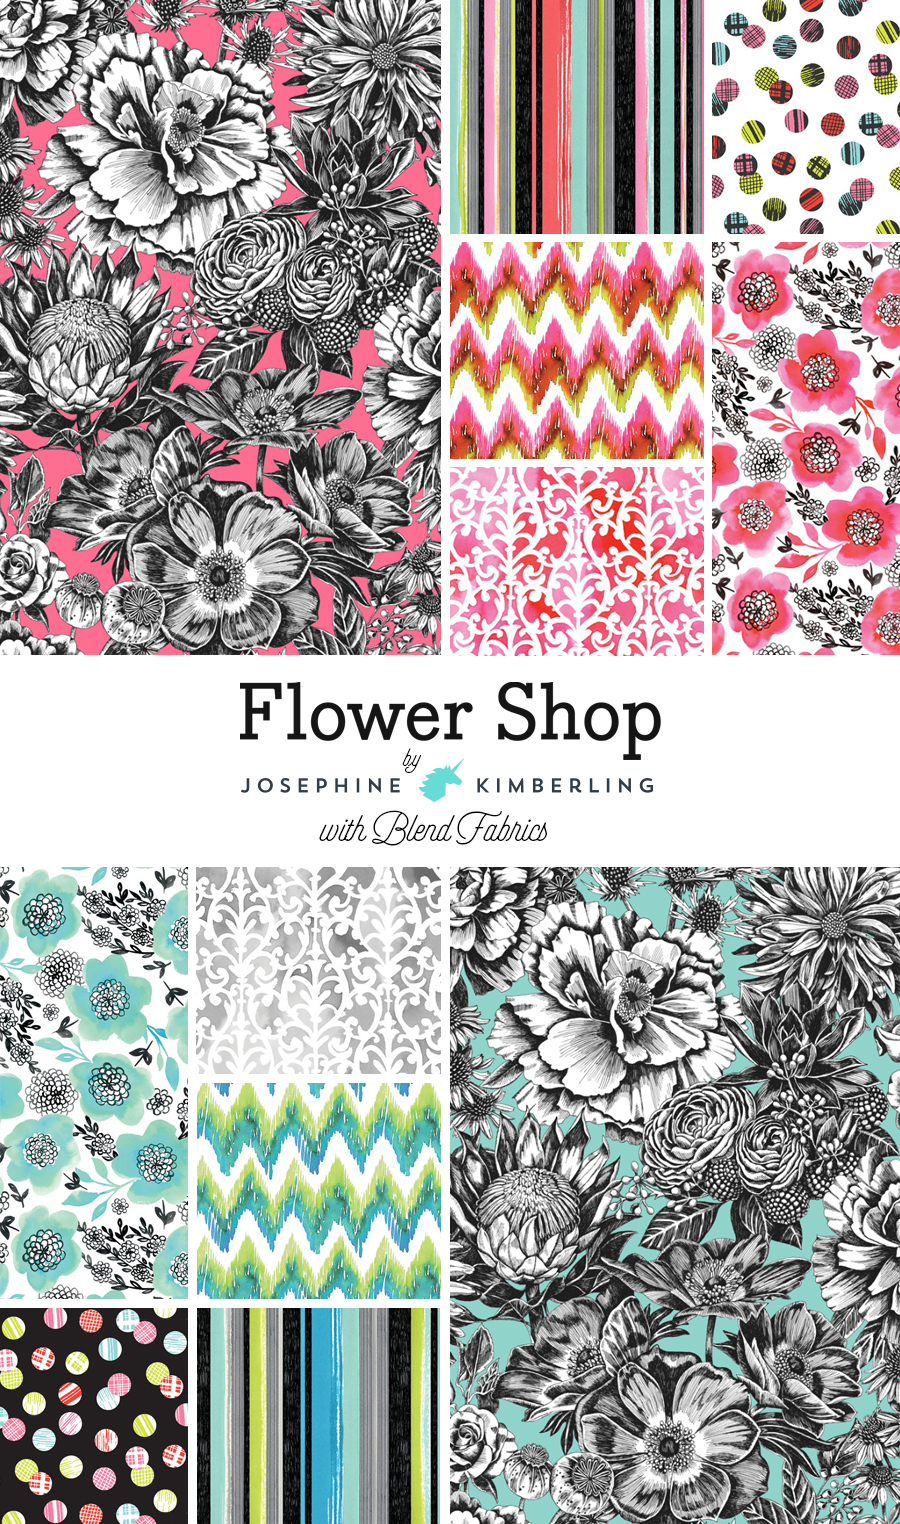 Josephine Kimberlings Flower Shop Fabric Collection with Blend Fabrics